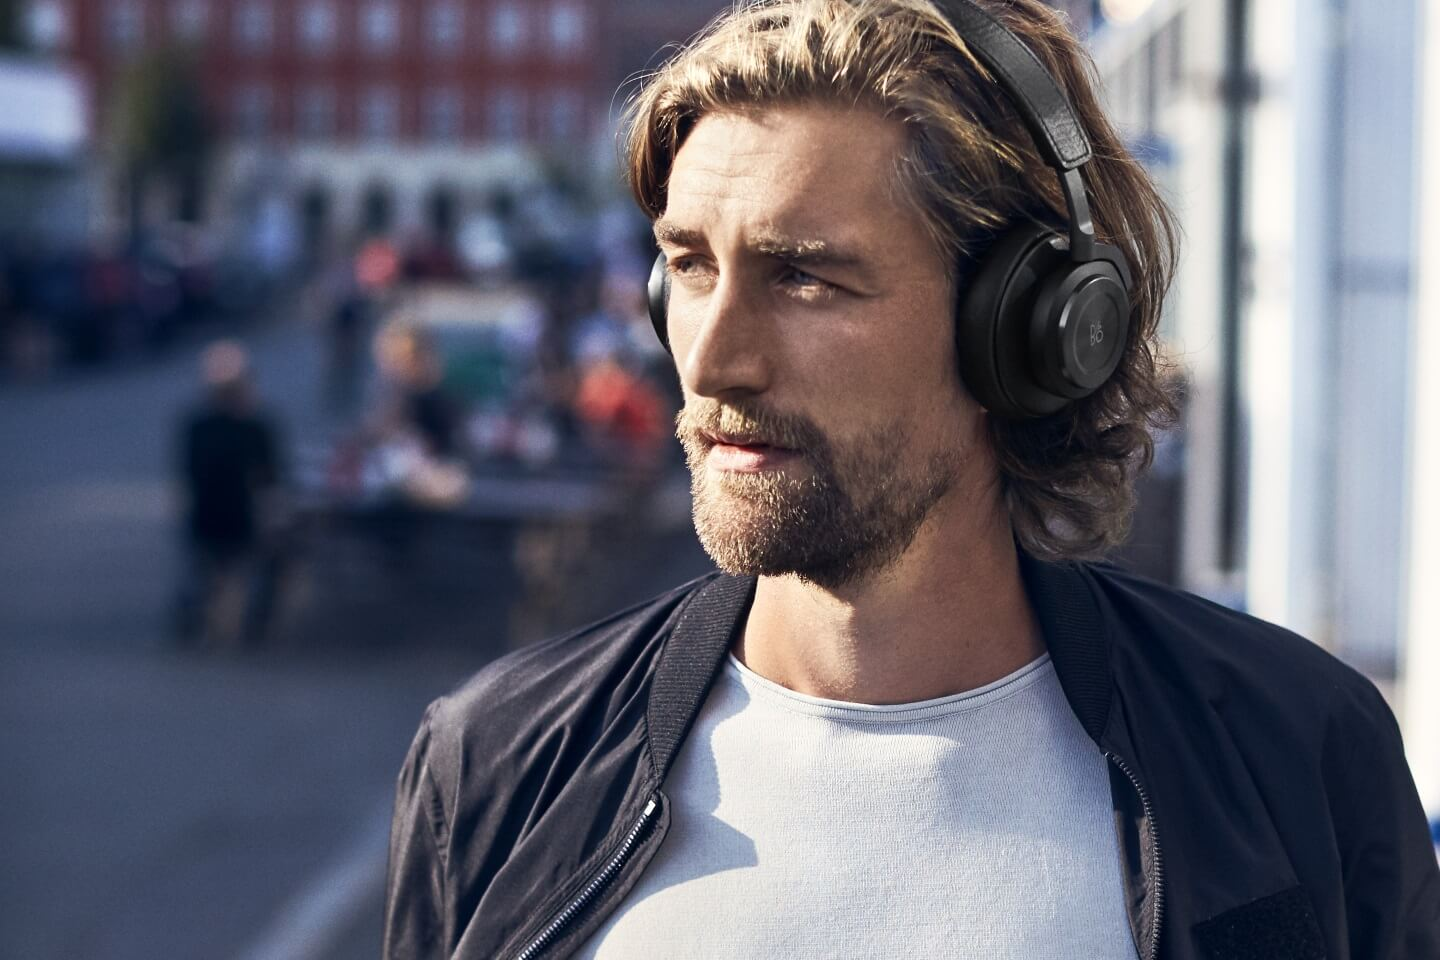 BeoPlay H9 - up to 14 hrs. of battery life with active ANC.